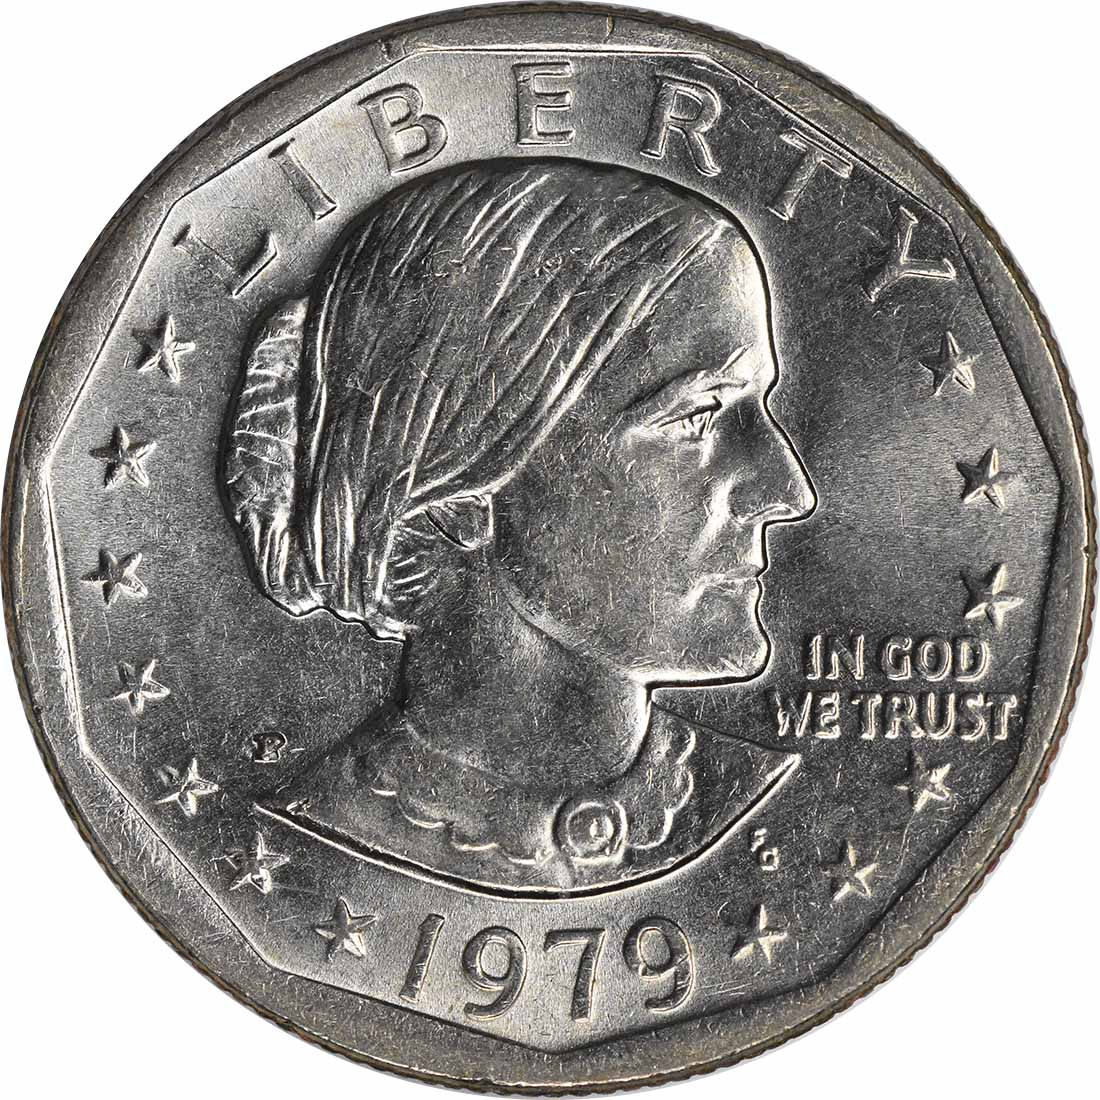 1979-P Susan B. Anthony Dollar Wide Rim MS64 Uncertified